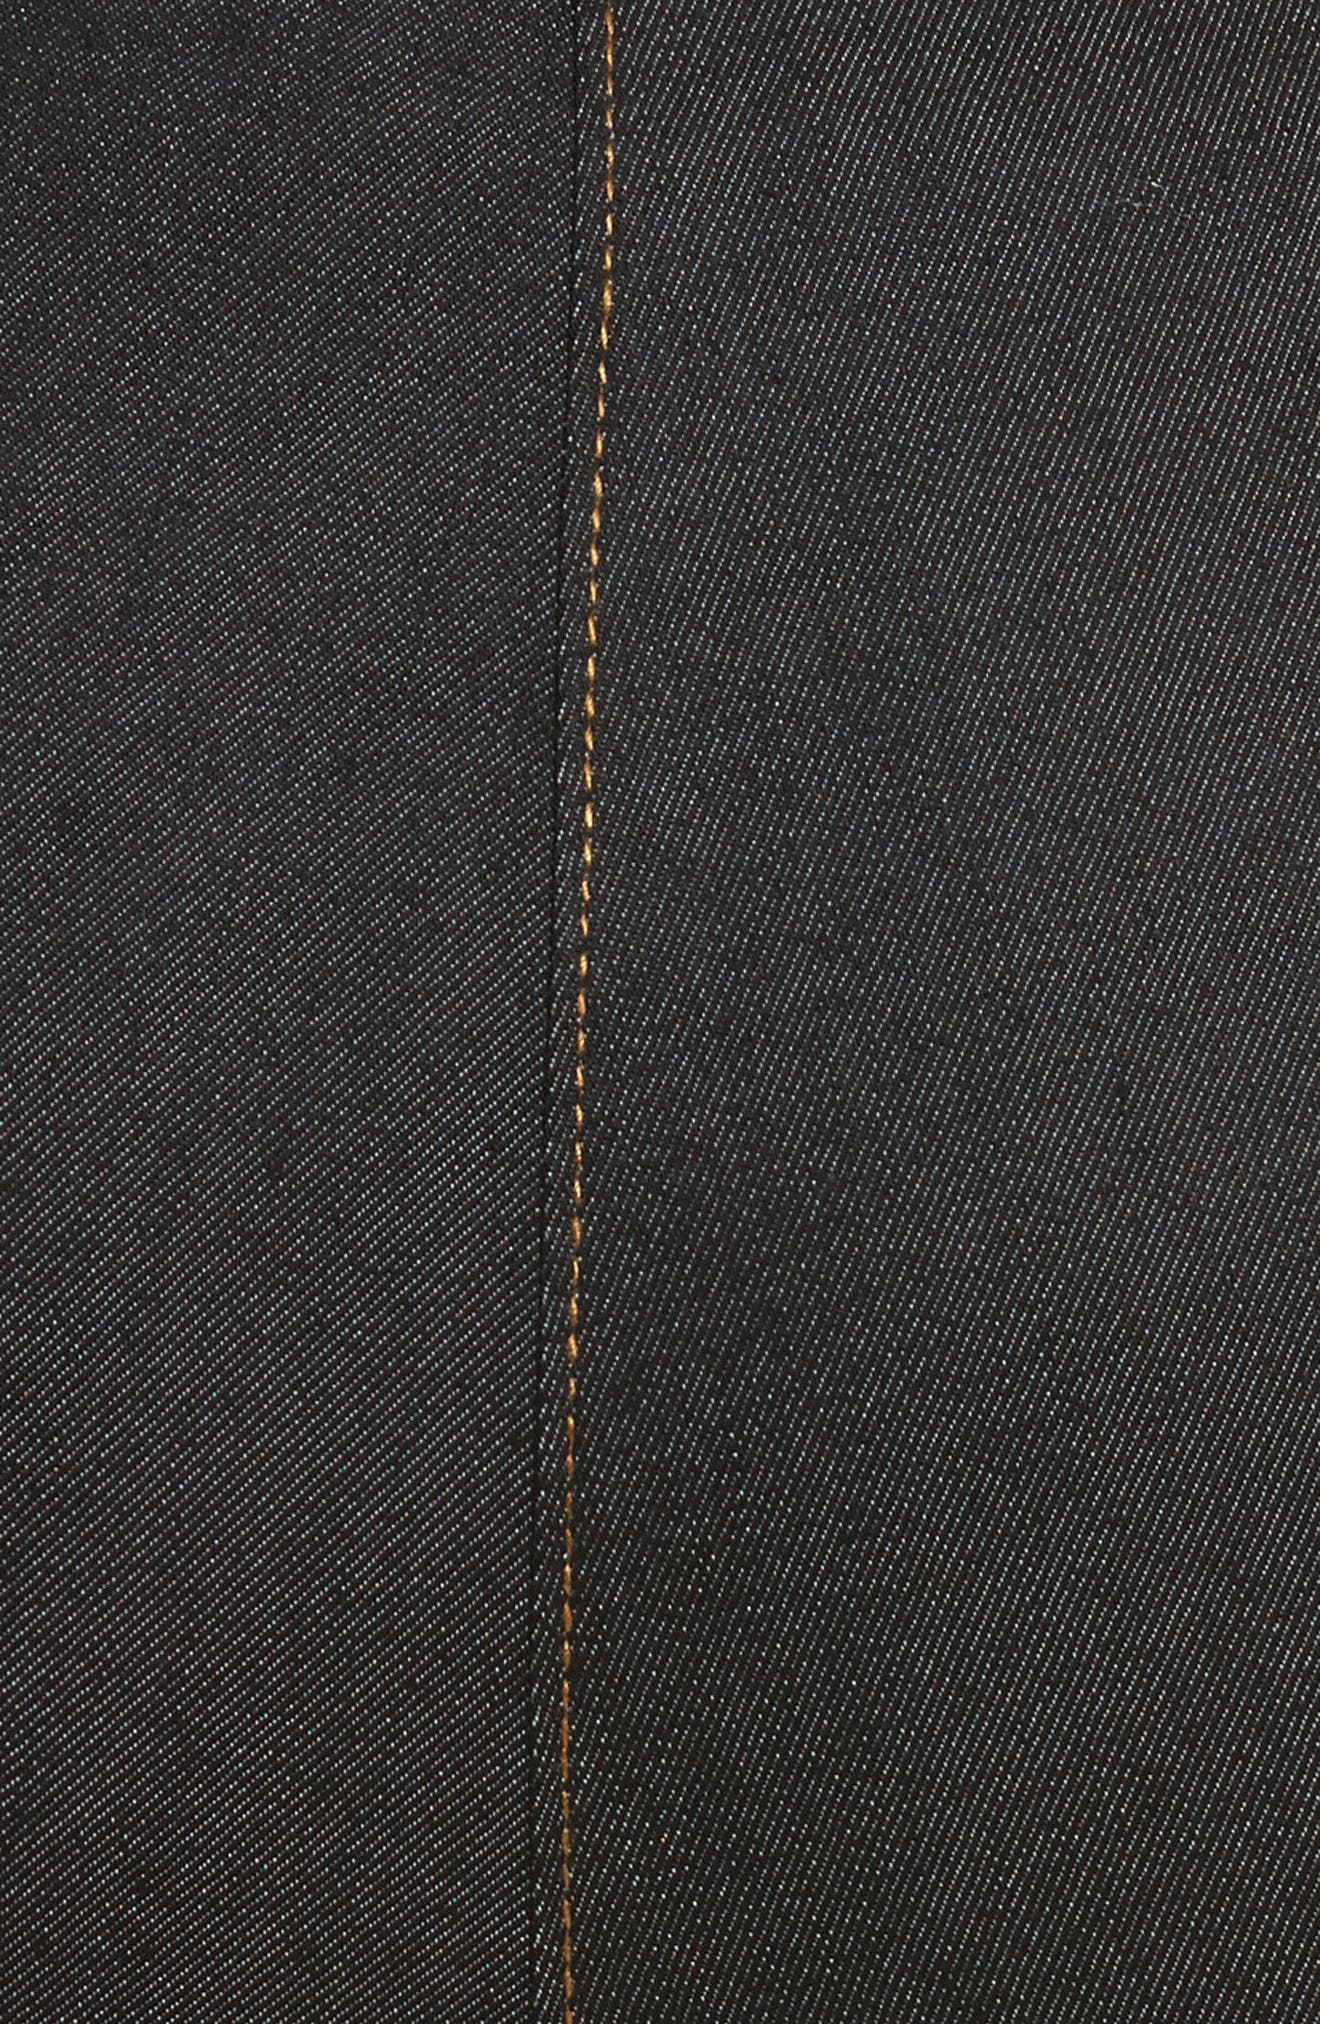 Andie Lace Front Skinny Ankle Jeans,                             Alternate thumbnail 5, color,                             001